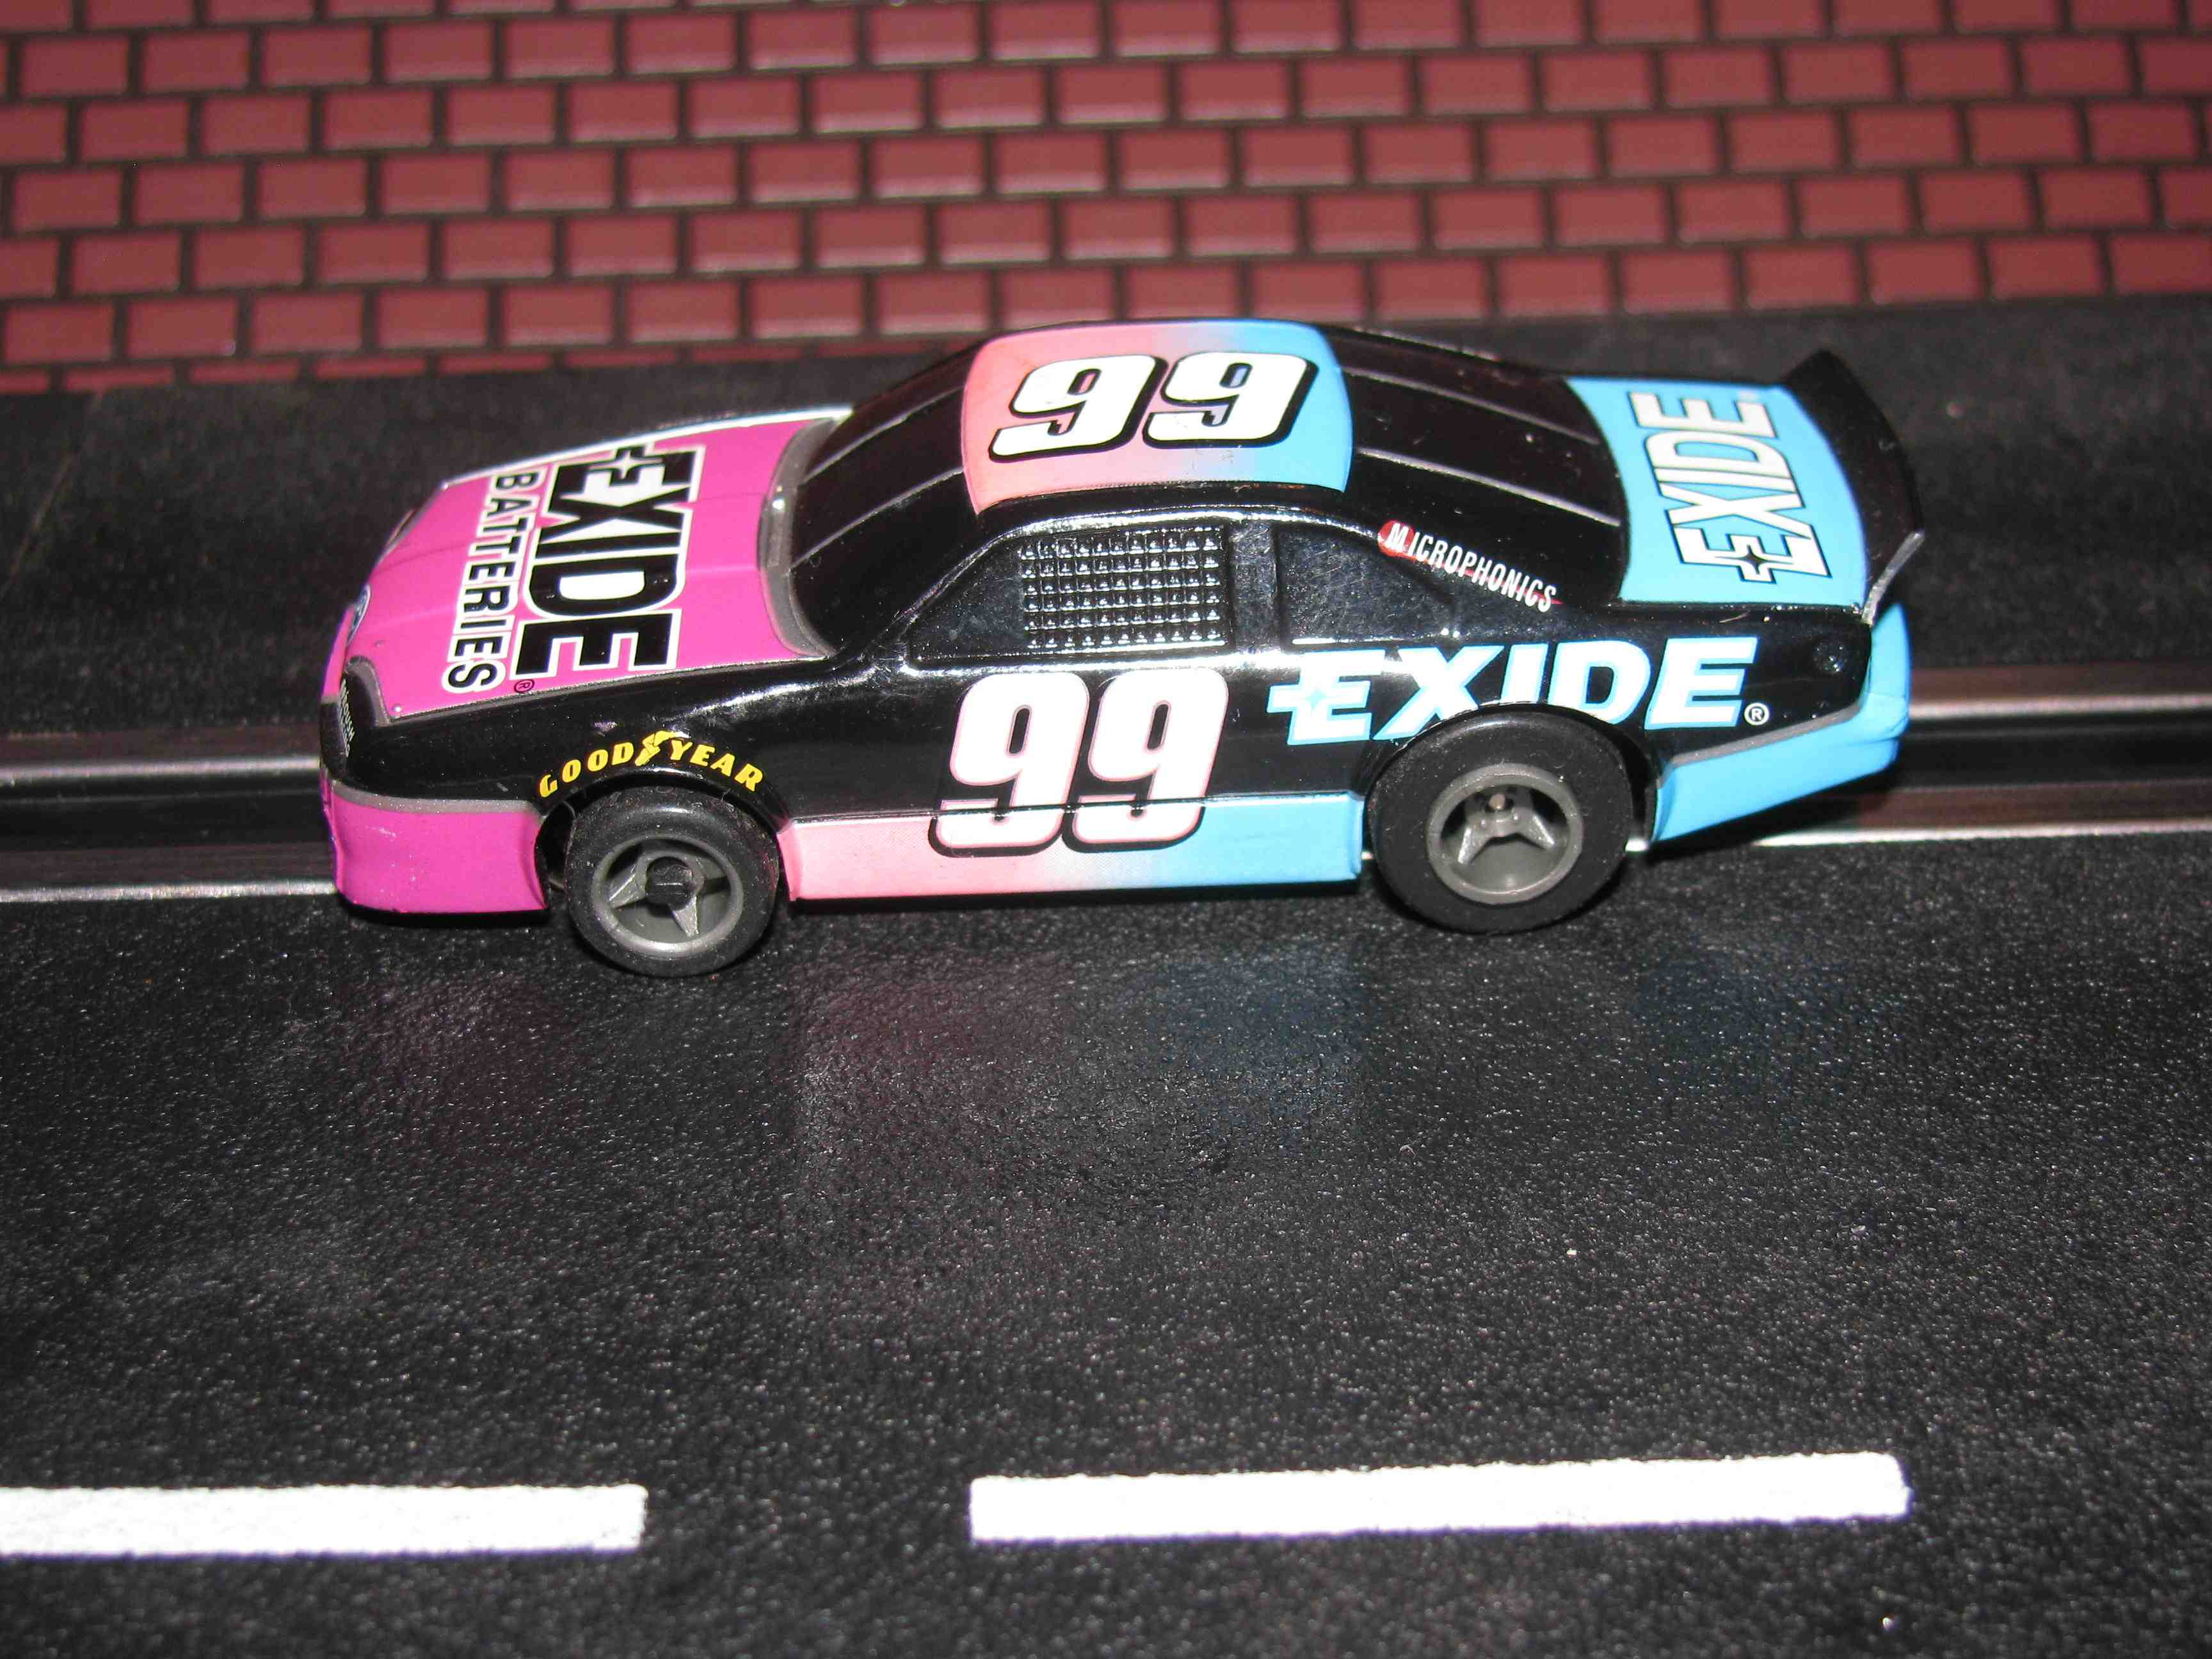 * SOLD * Tyco Like-Like HO Slot Car #99 Ford T-Bird (Exide Batteries) with Guide Post